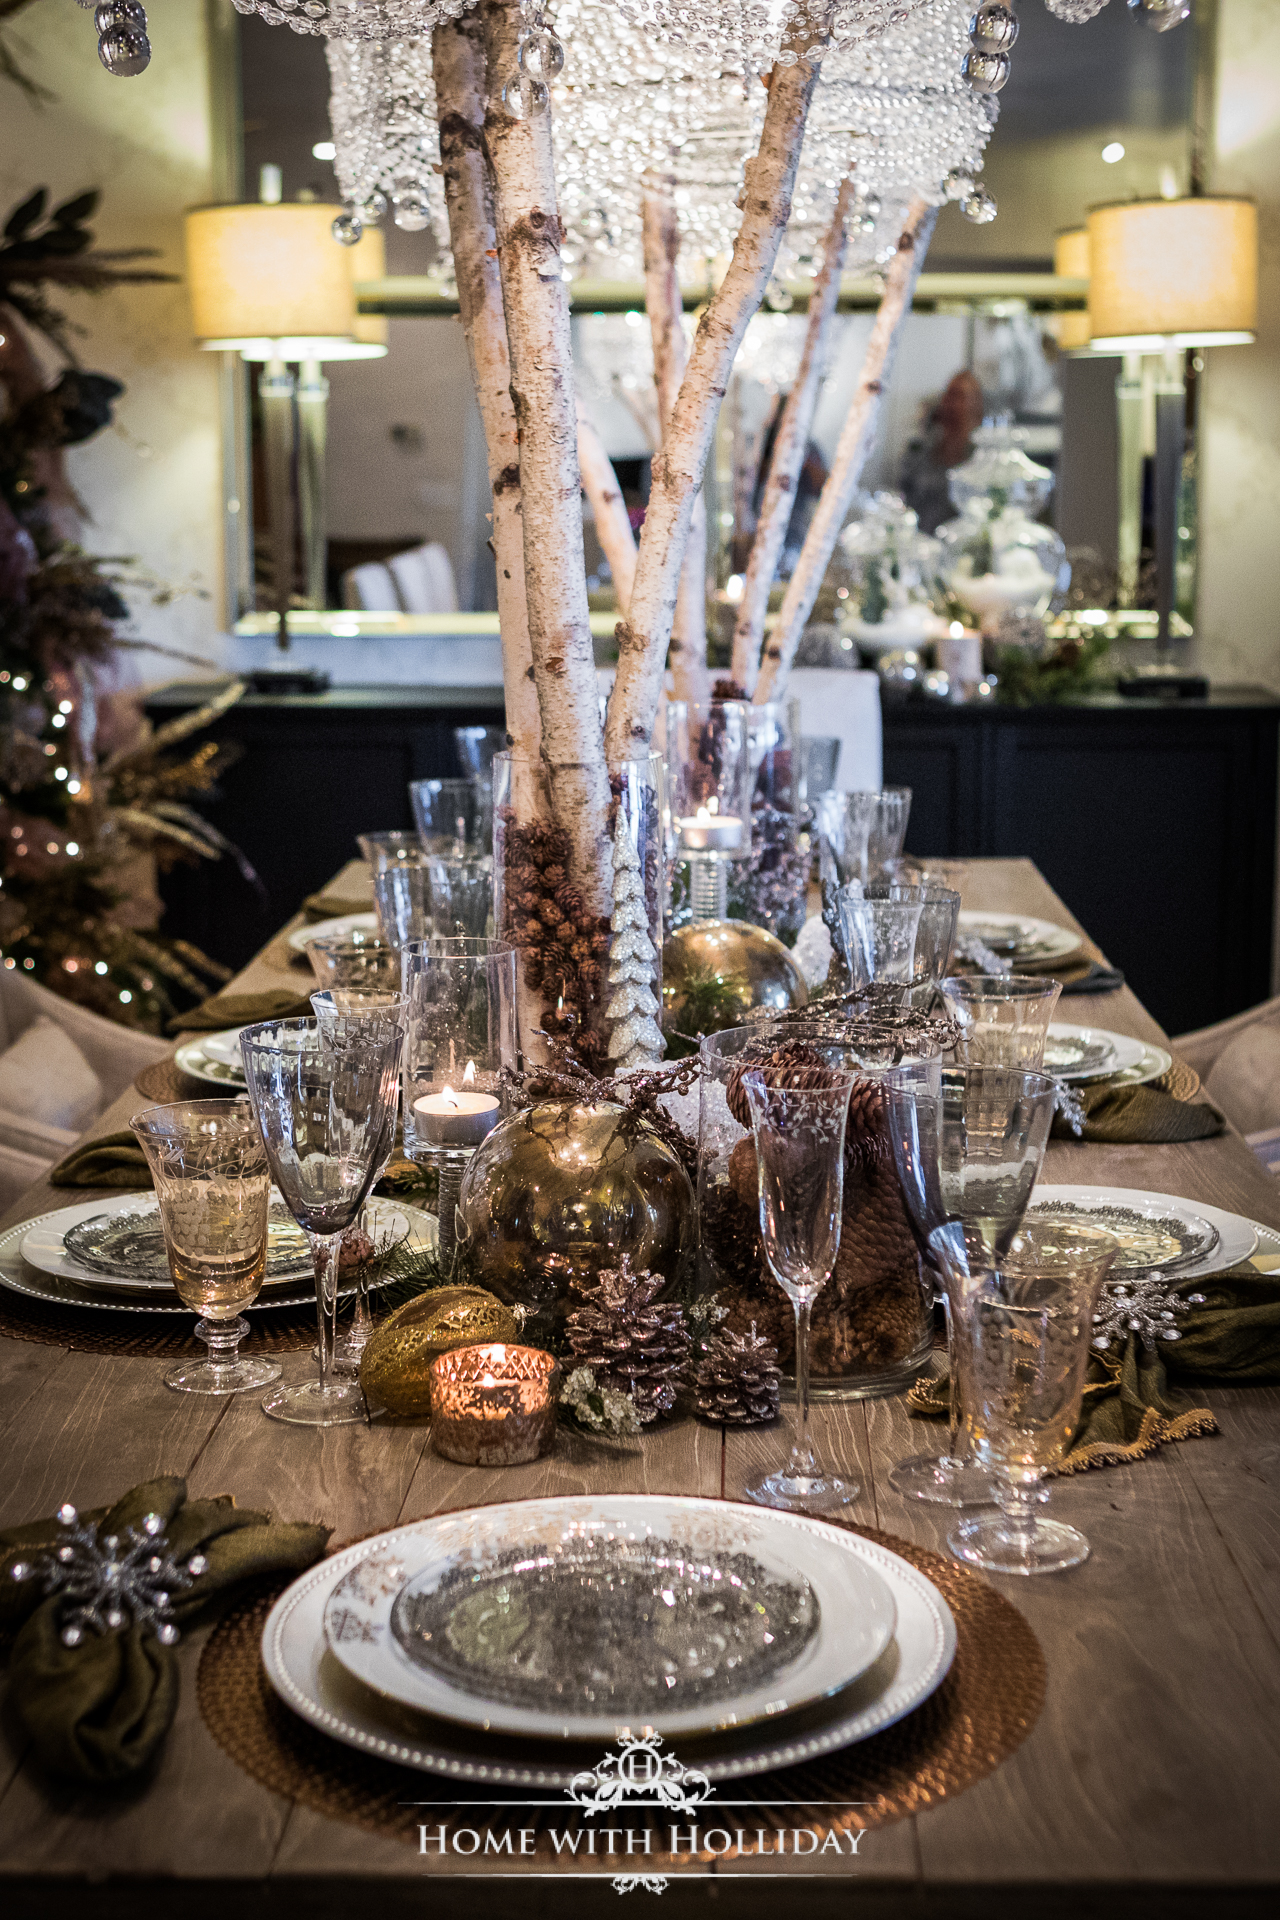 Easy Christmas Decorating Ideas - Use Natural Elements